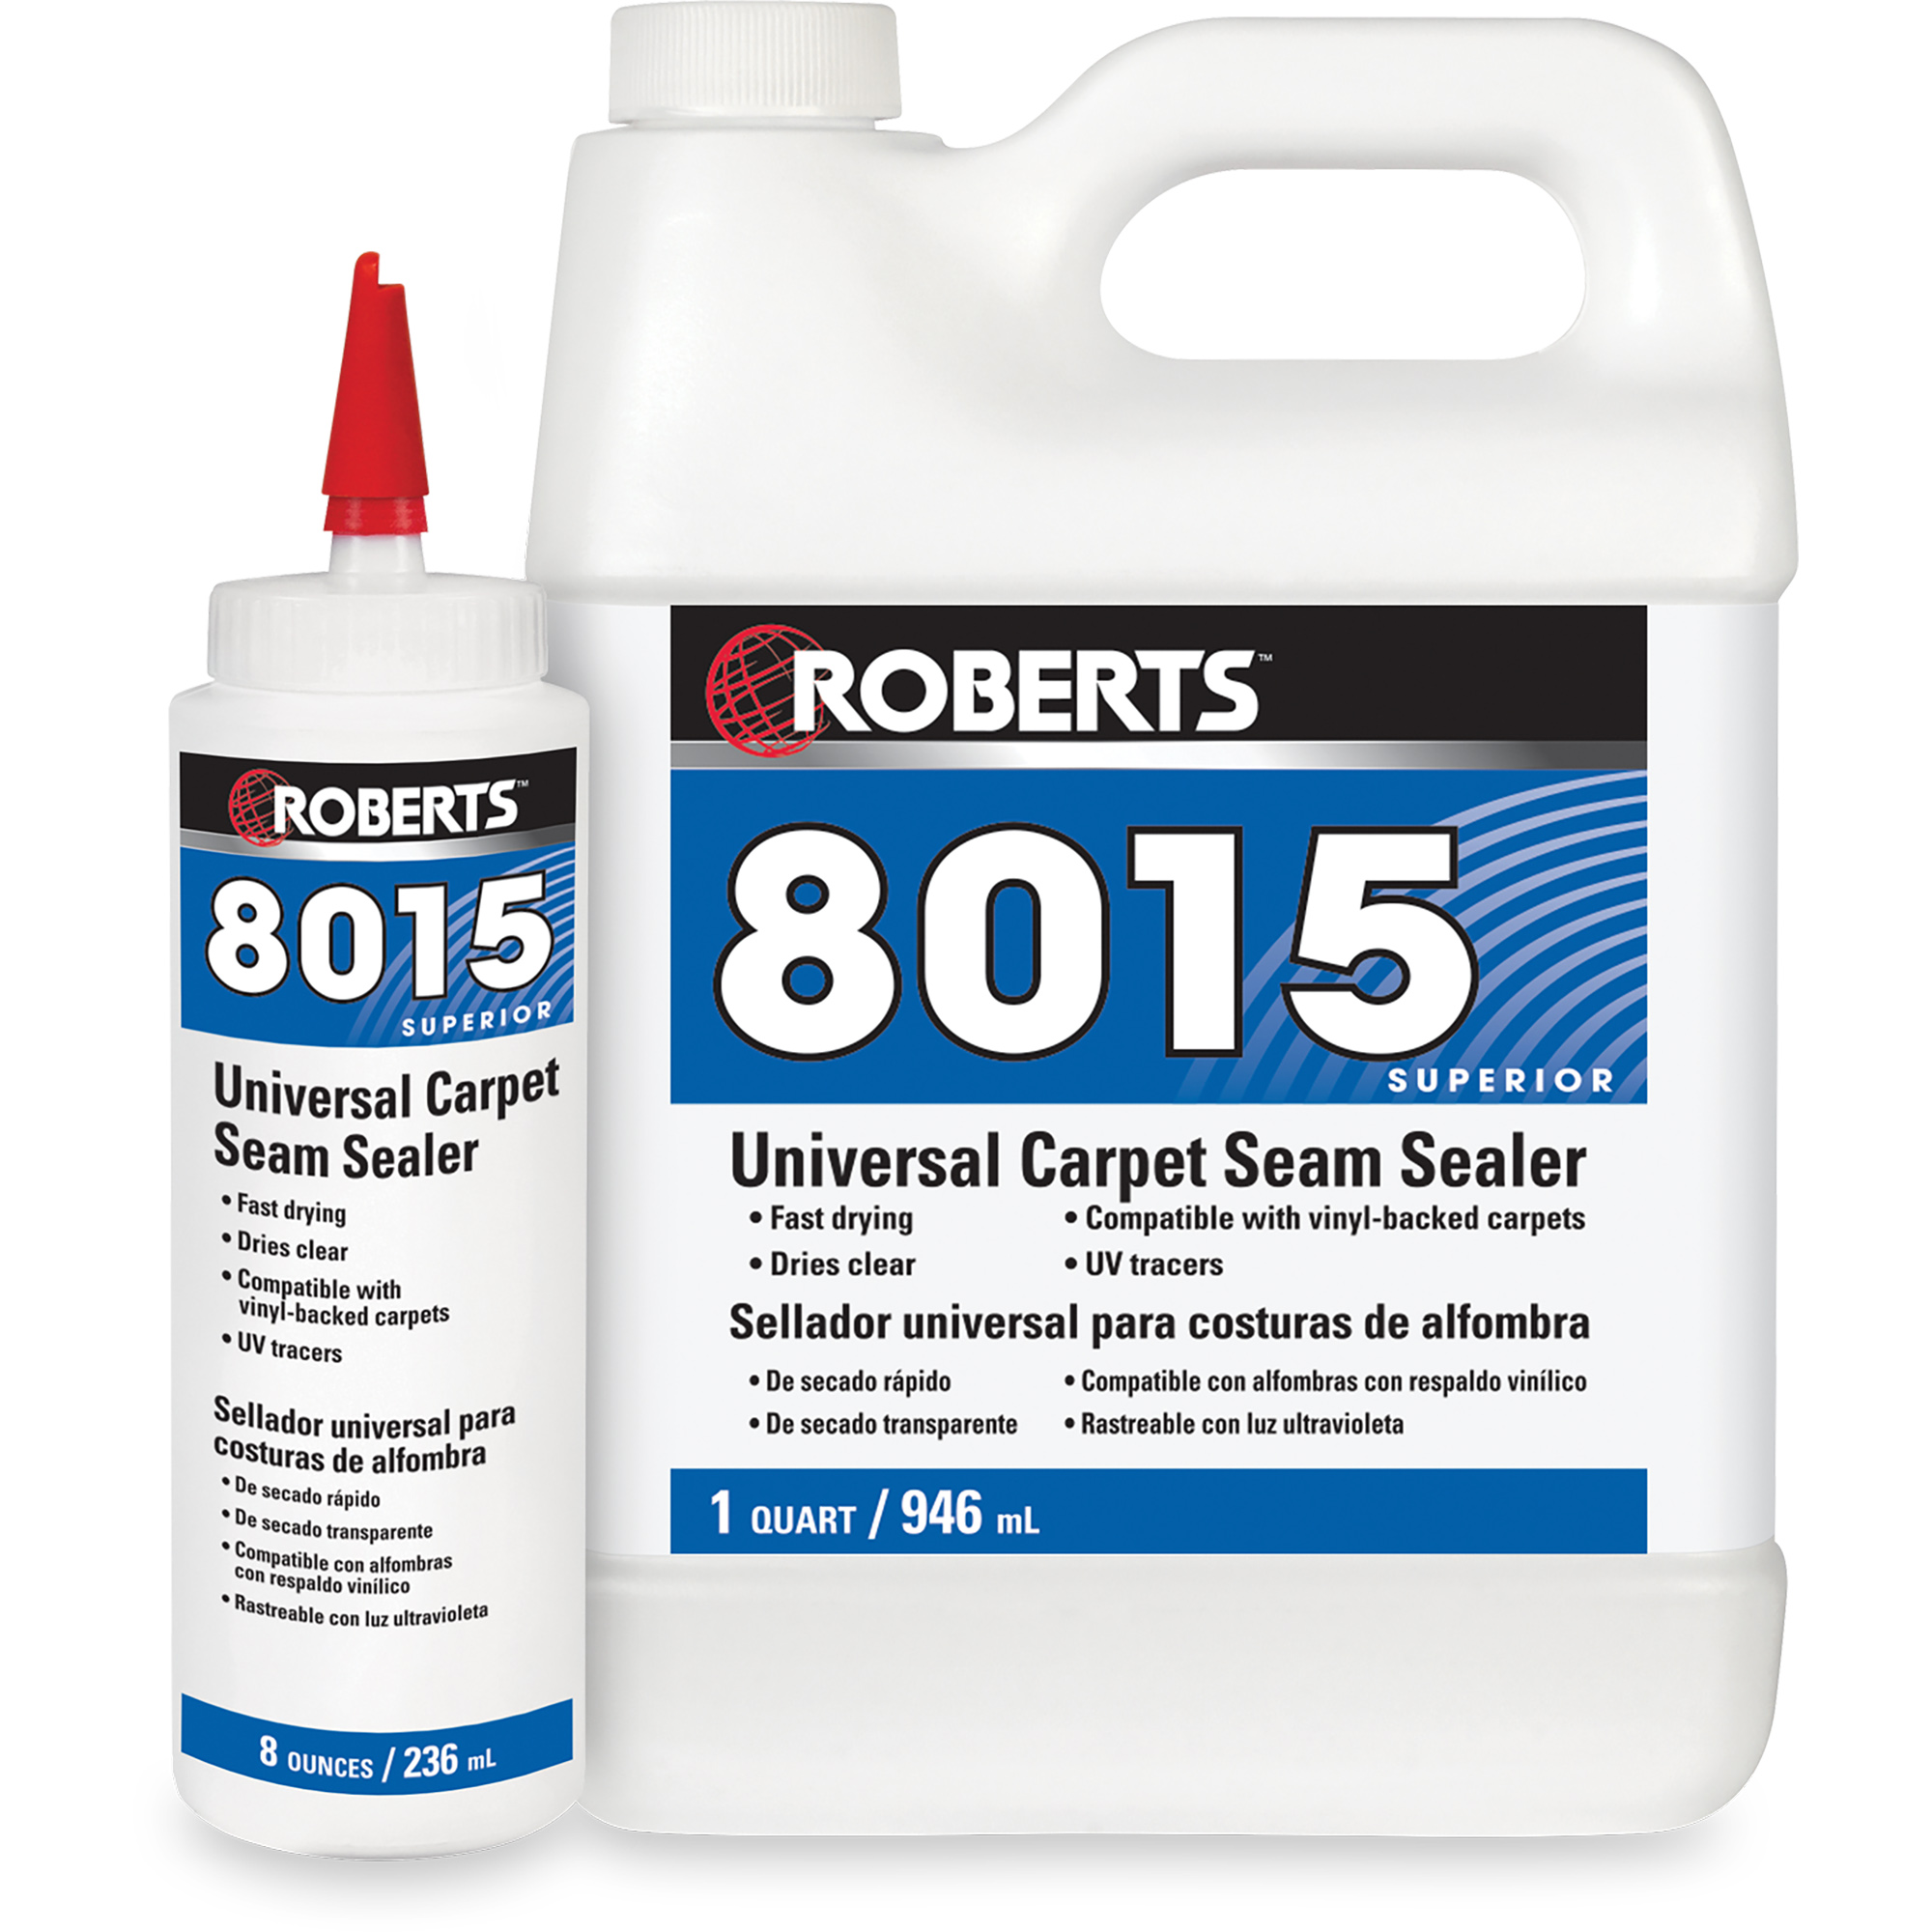 Universal Carpet Seam Sealer